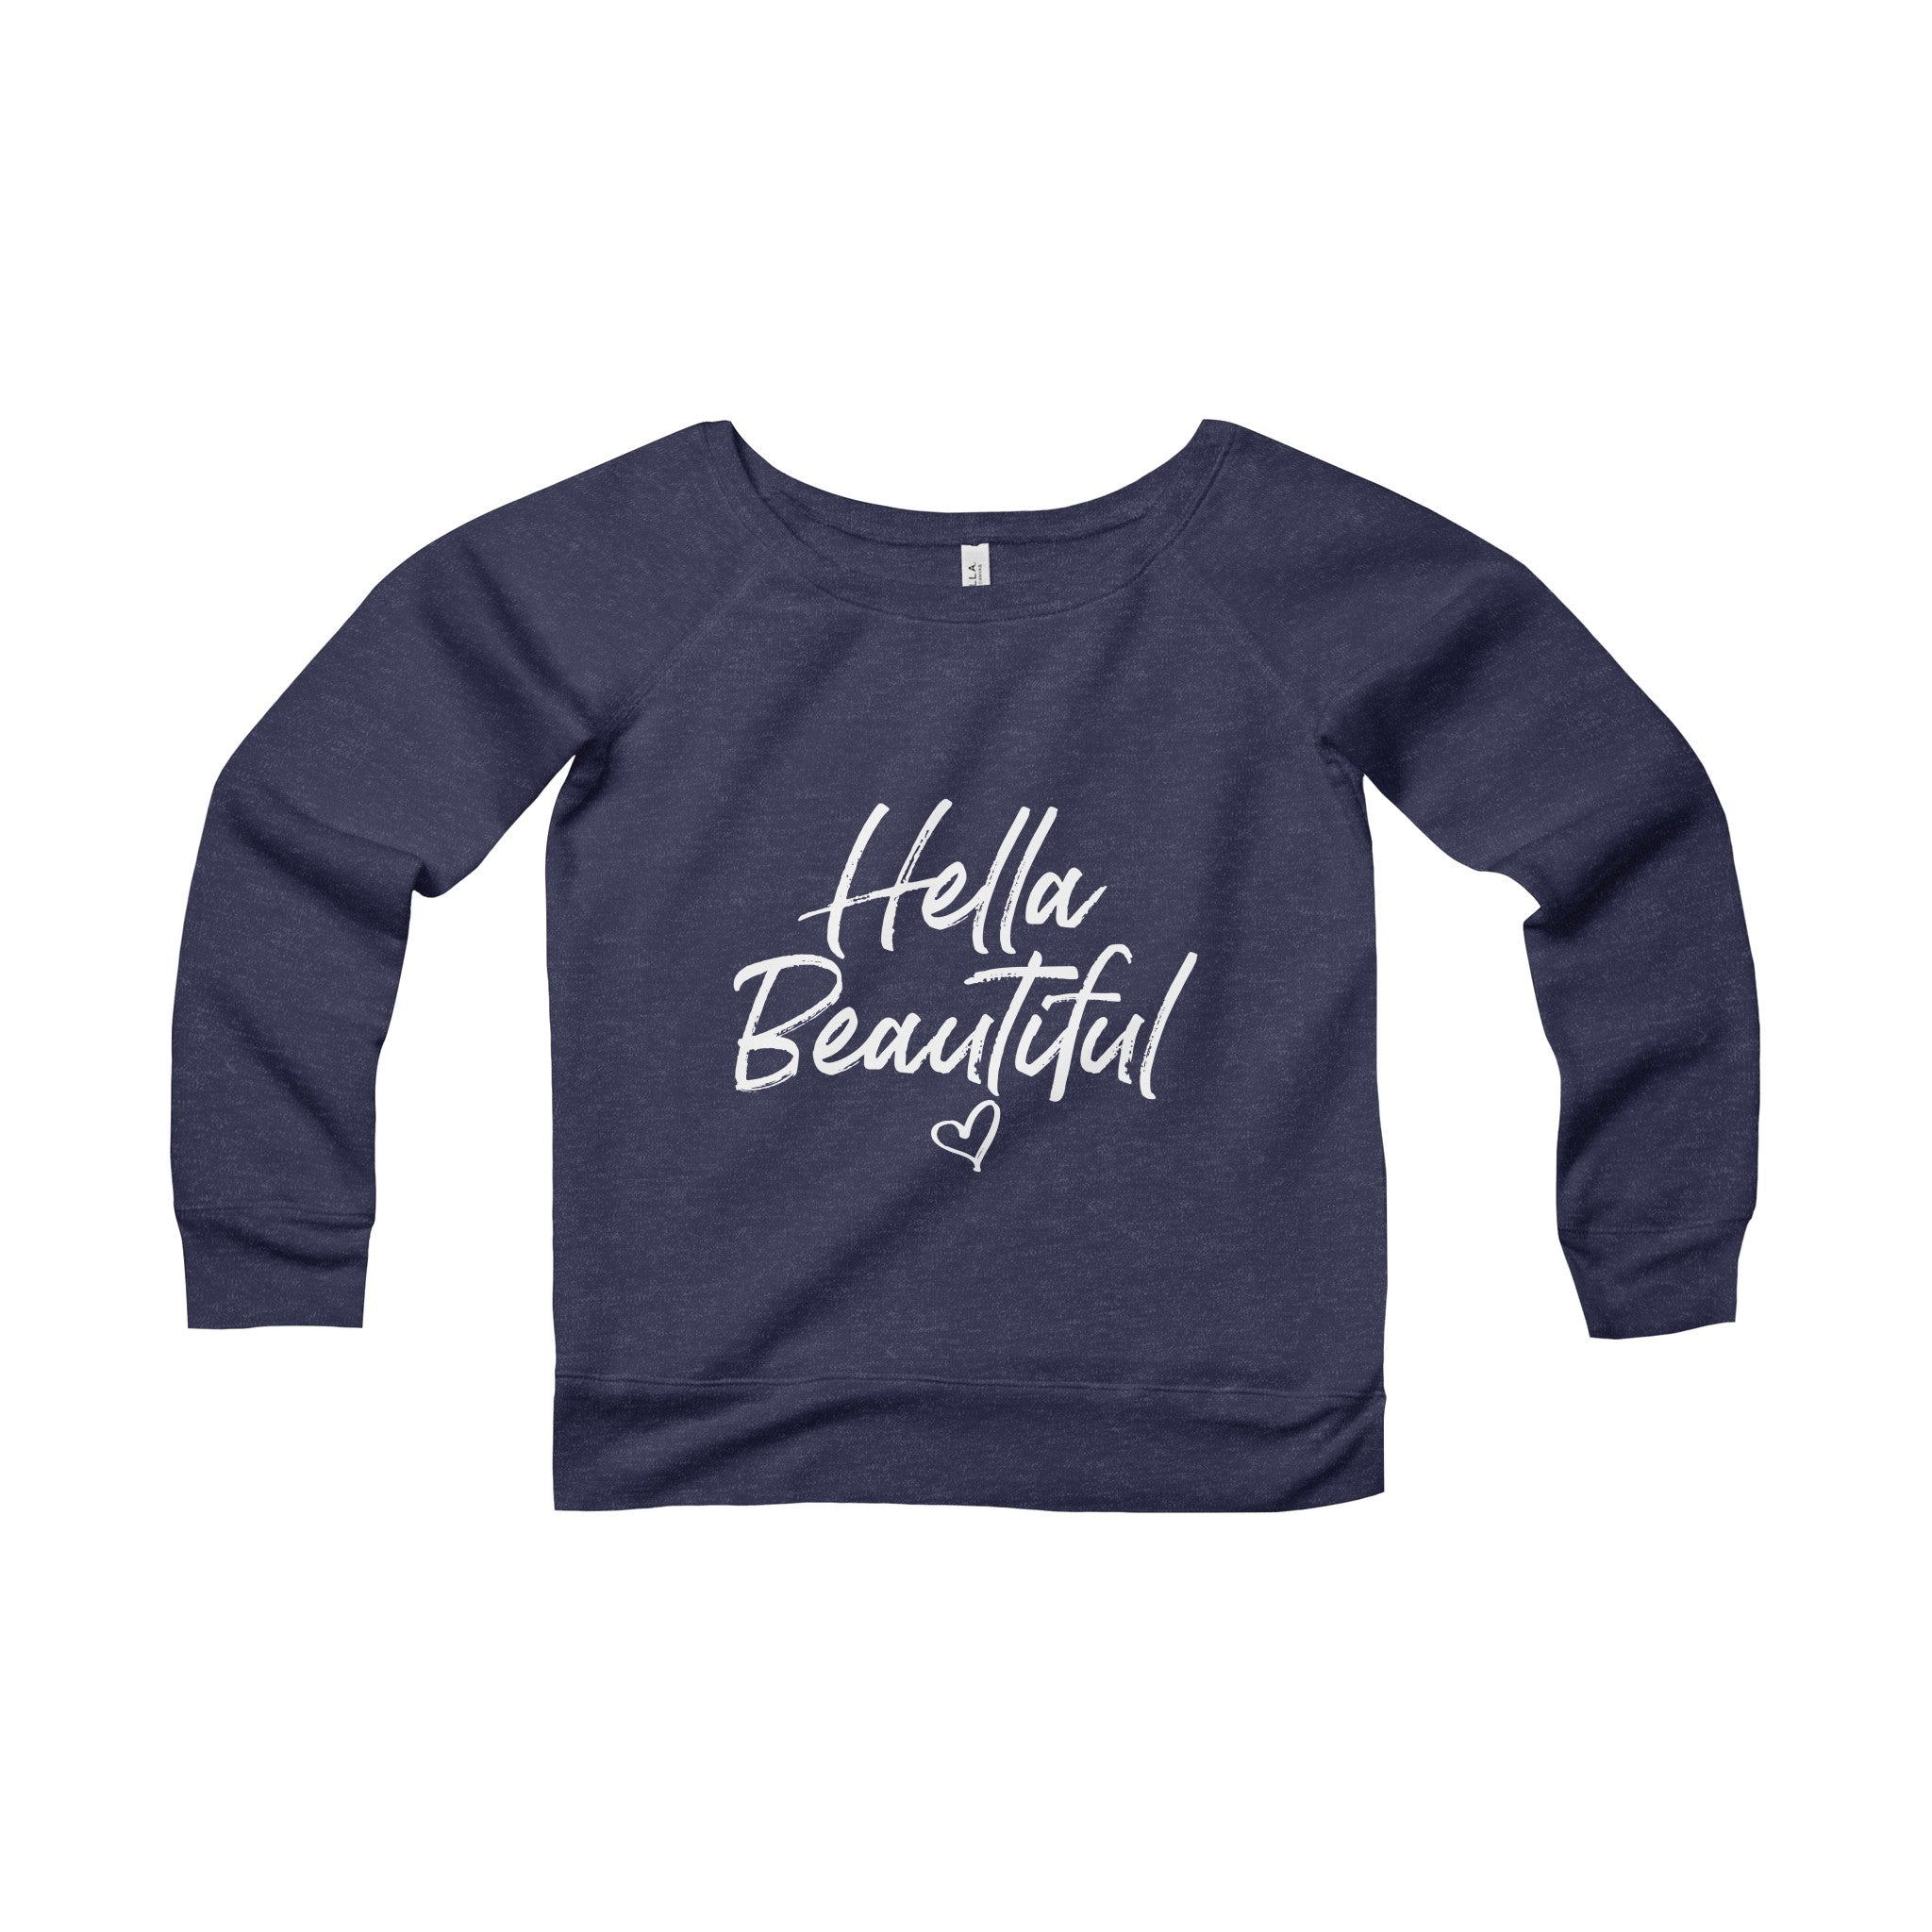 Hella Beautiful -- Wide Neck Sweatshirt